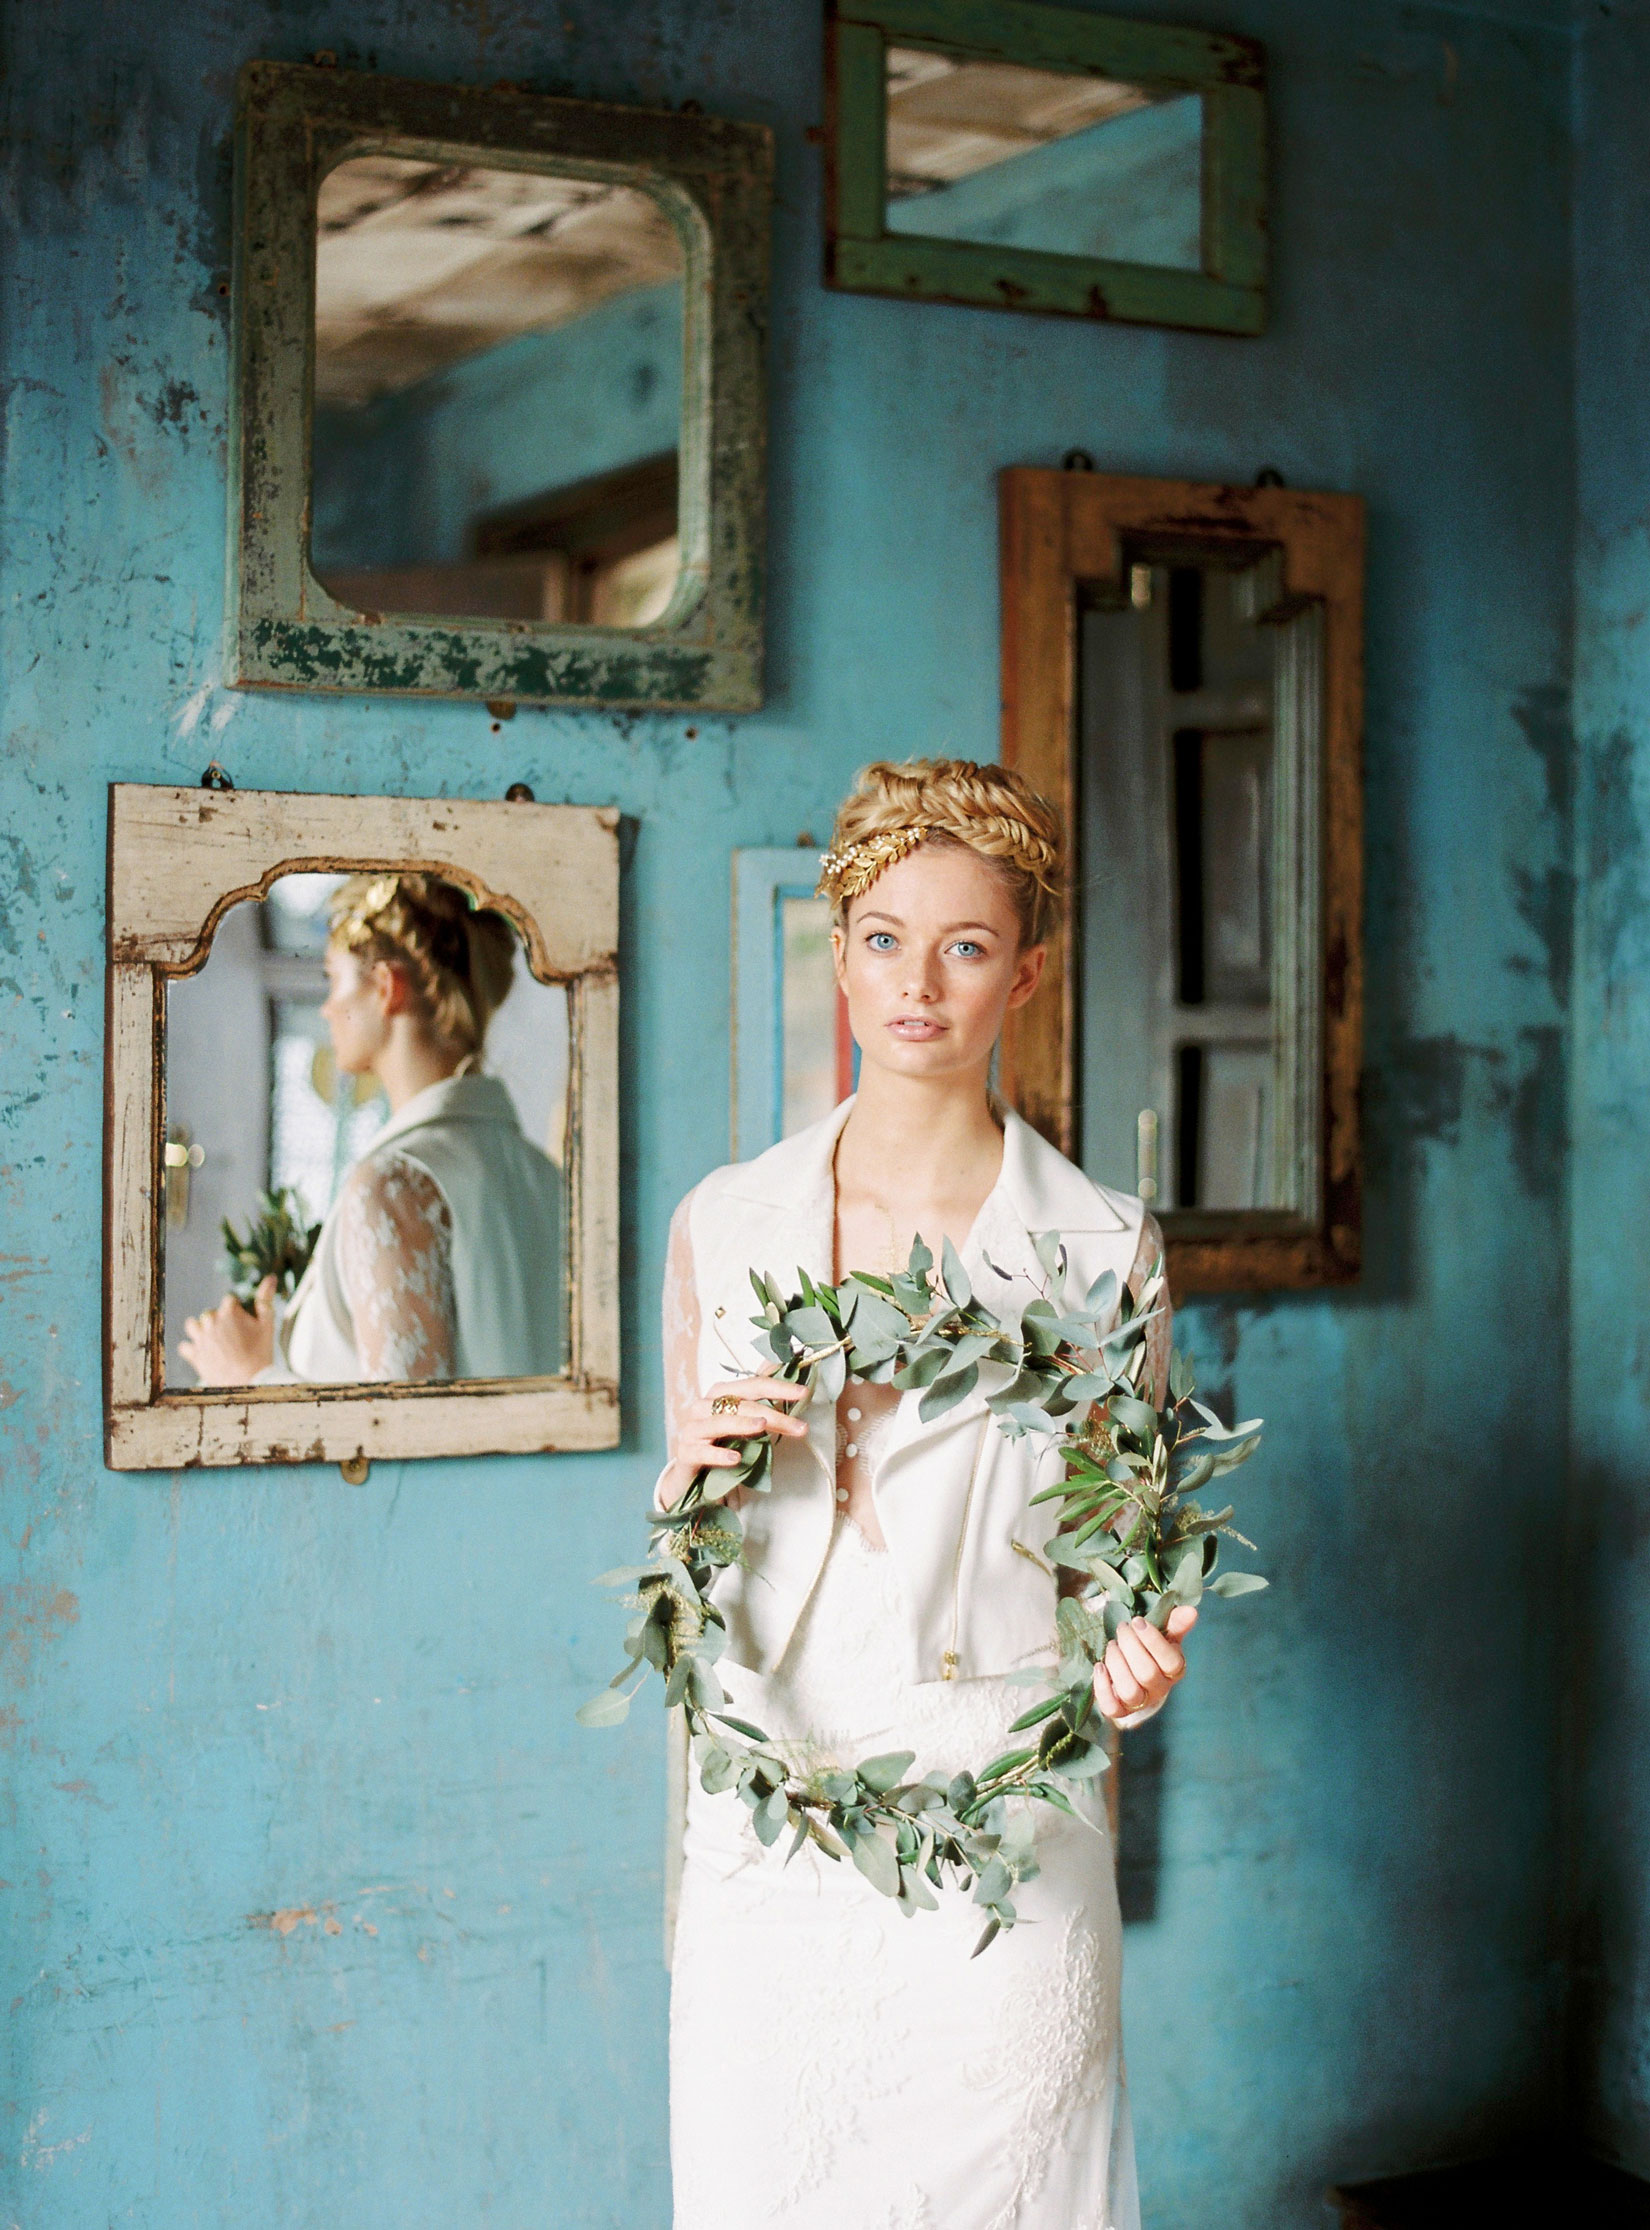 sarah-harper-floral-design-luxury-wedding-florist-flowers-oxfordshite-cotsworlds-gallery-Lucy_Davenport_Photography_Paradise-045